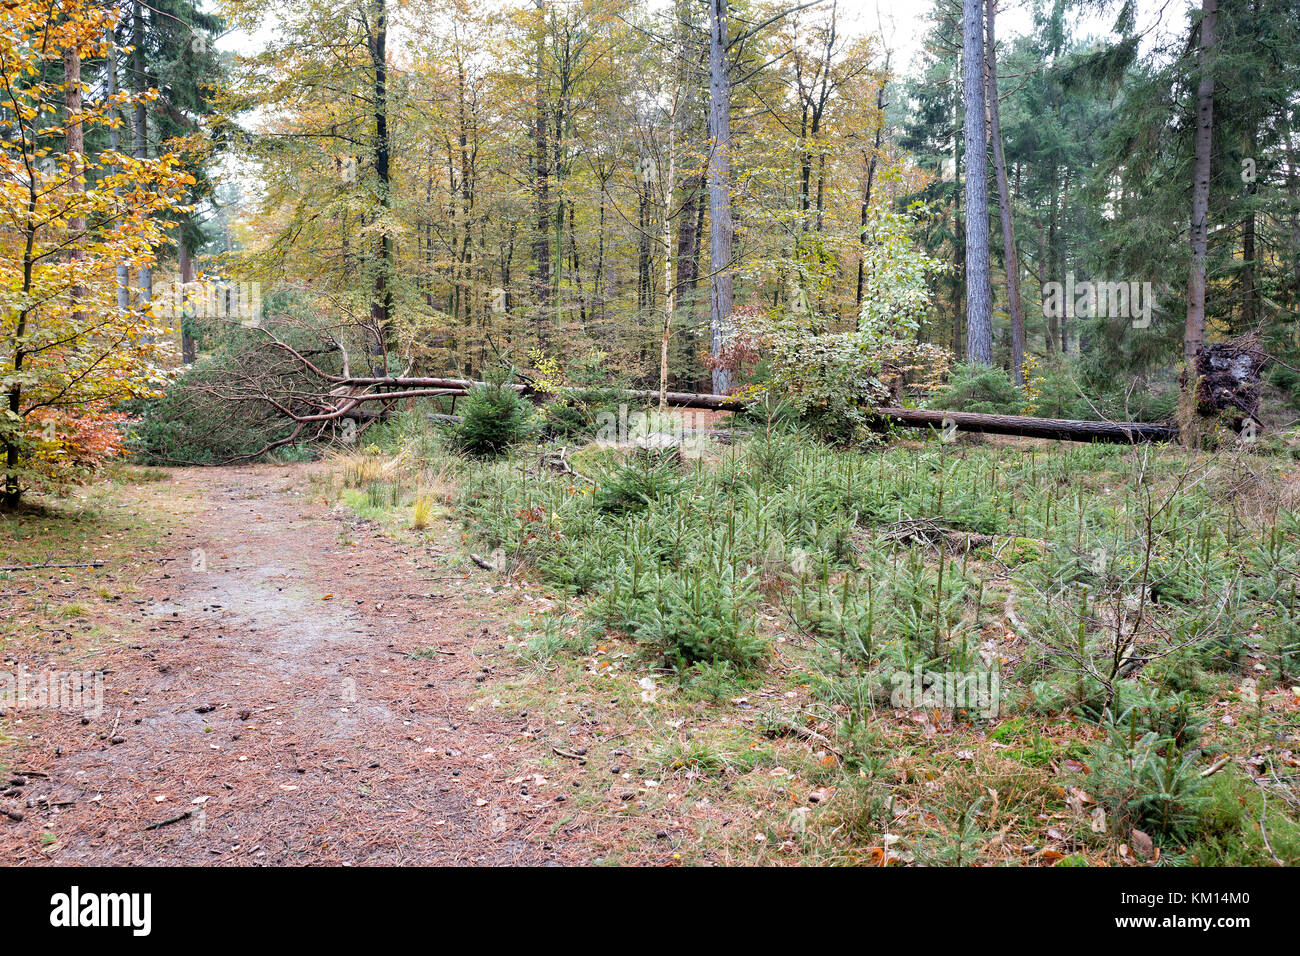 uprooted tree in forest - Stock Image